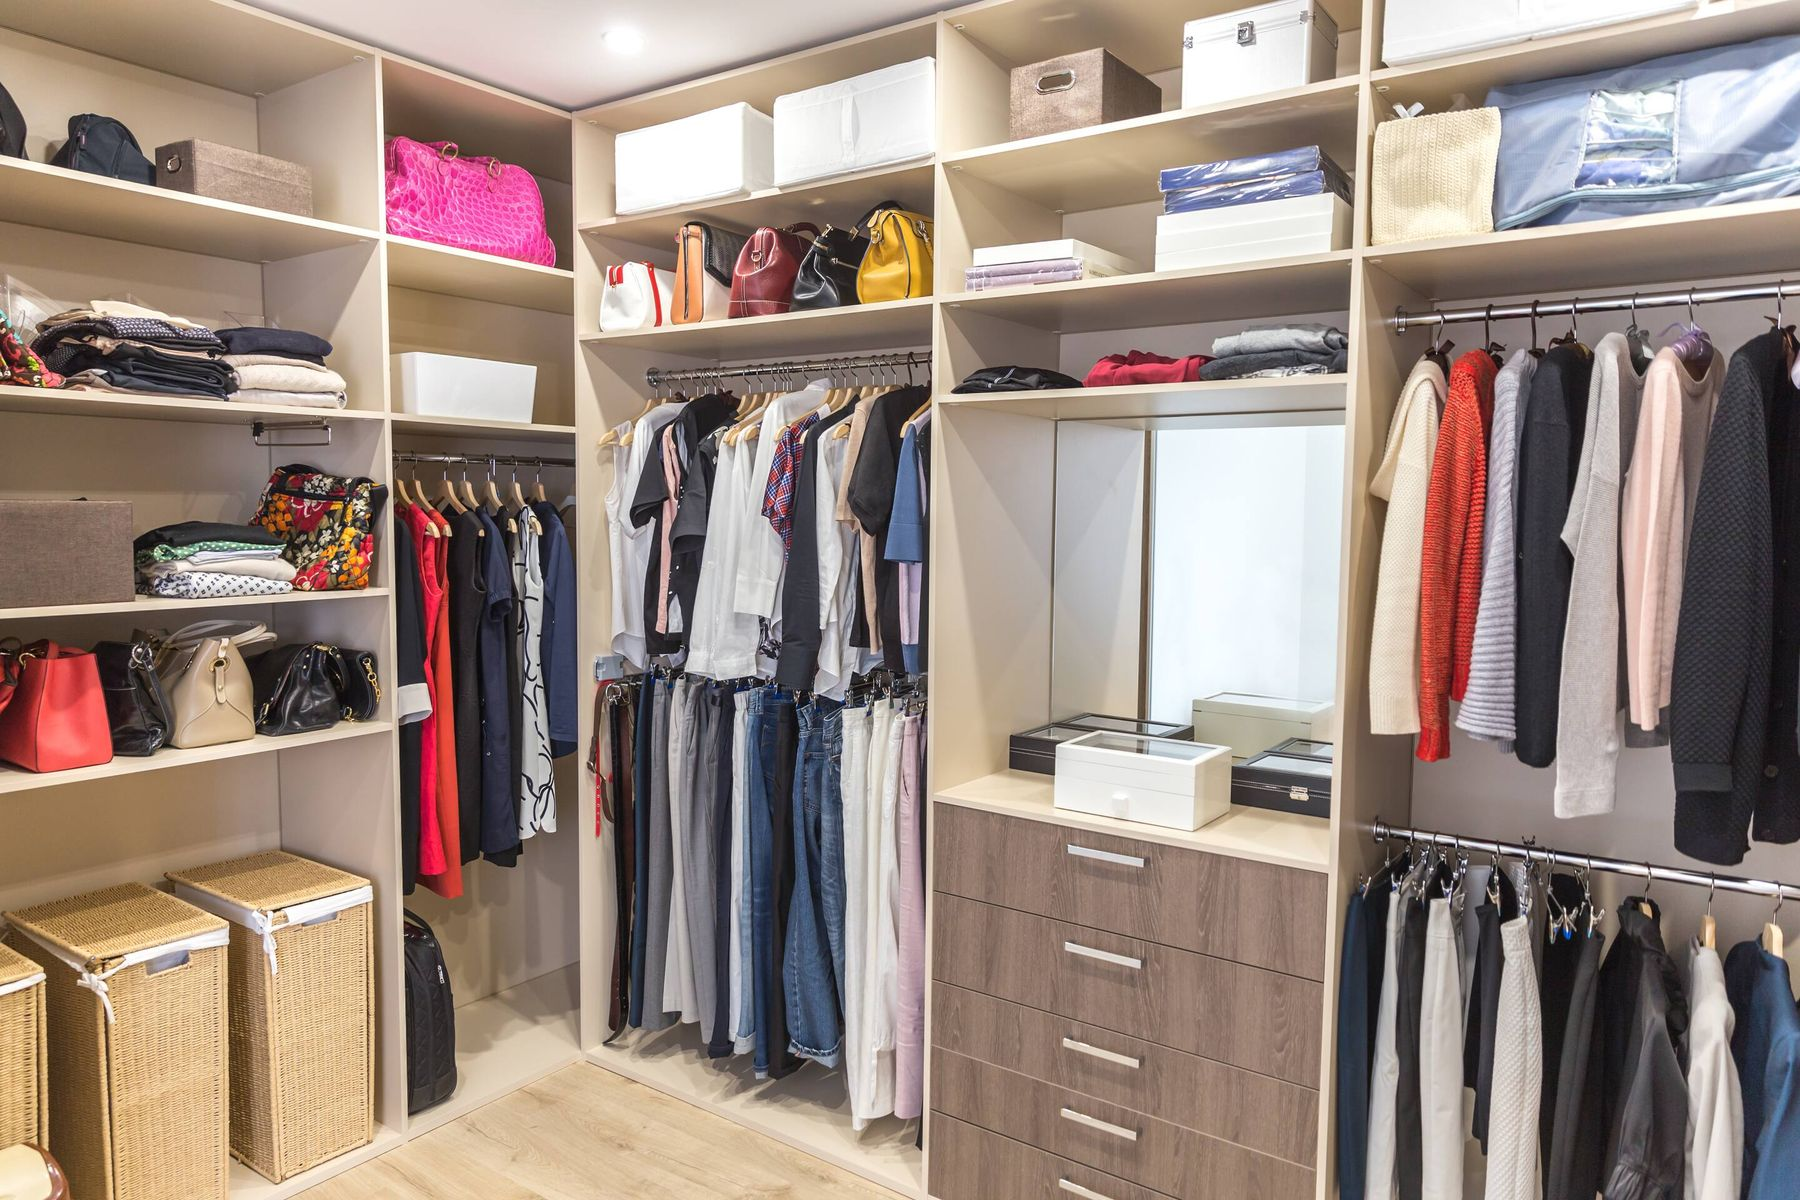 Give Your Closets a Clean Overhaul for Deepavali This Year!